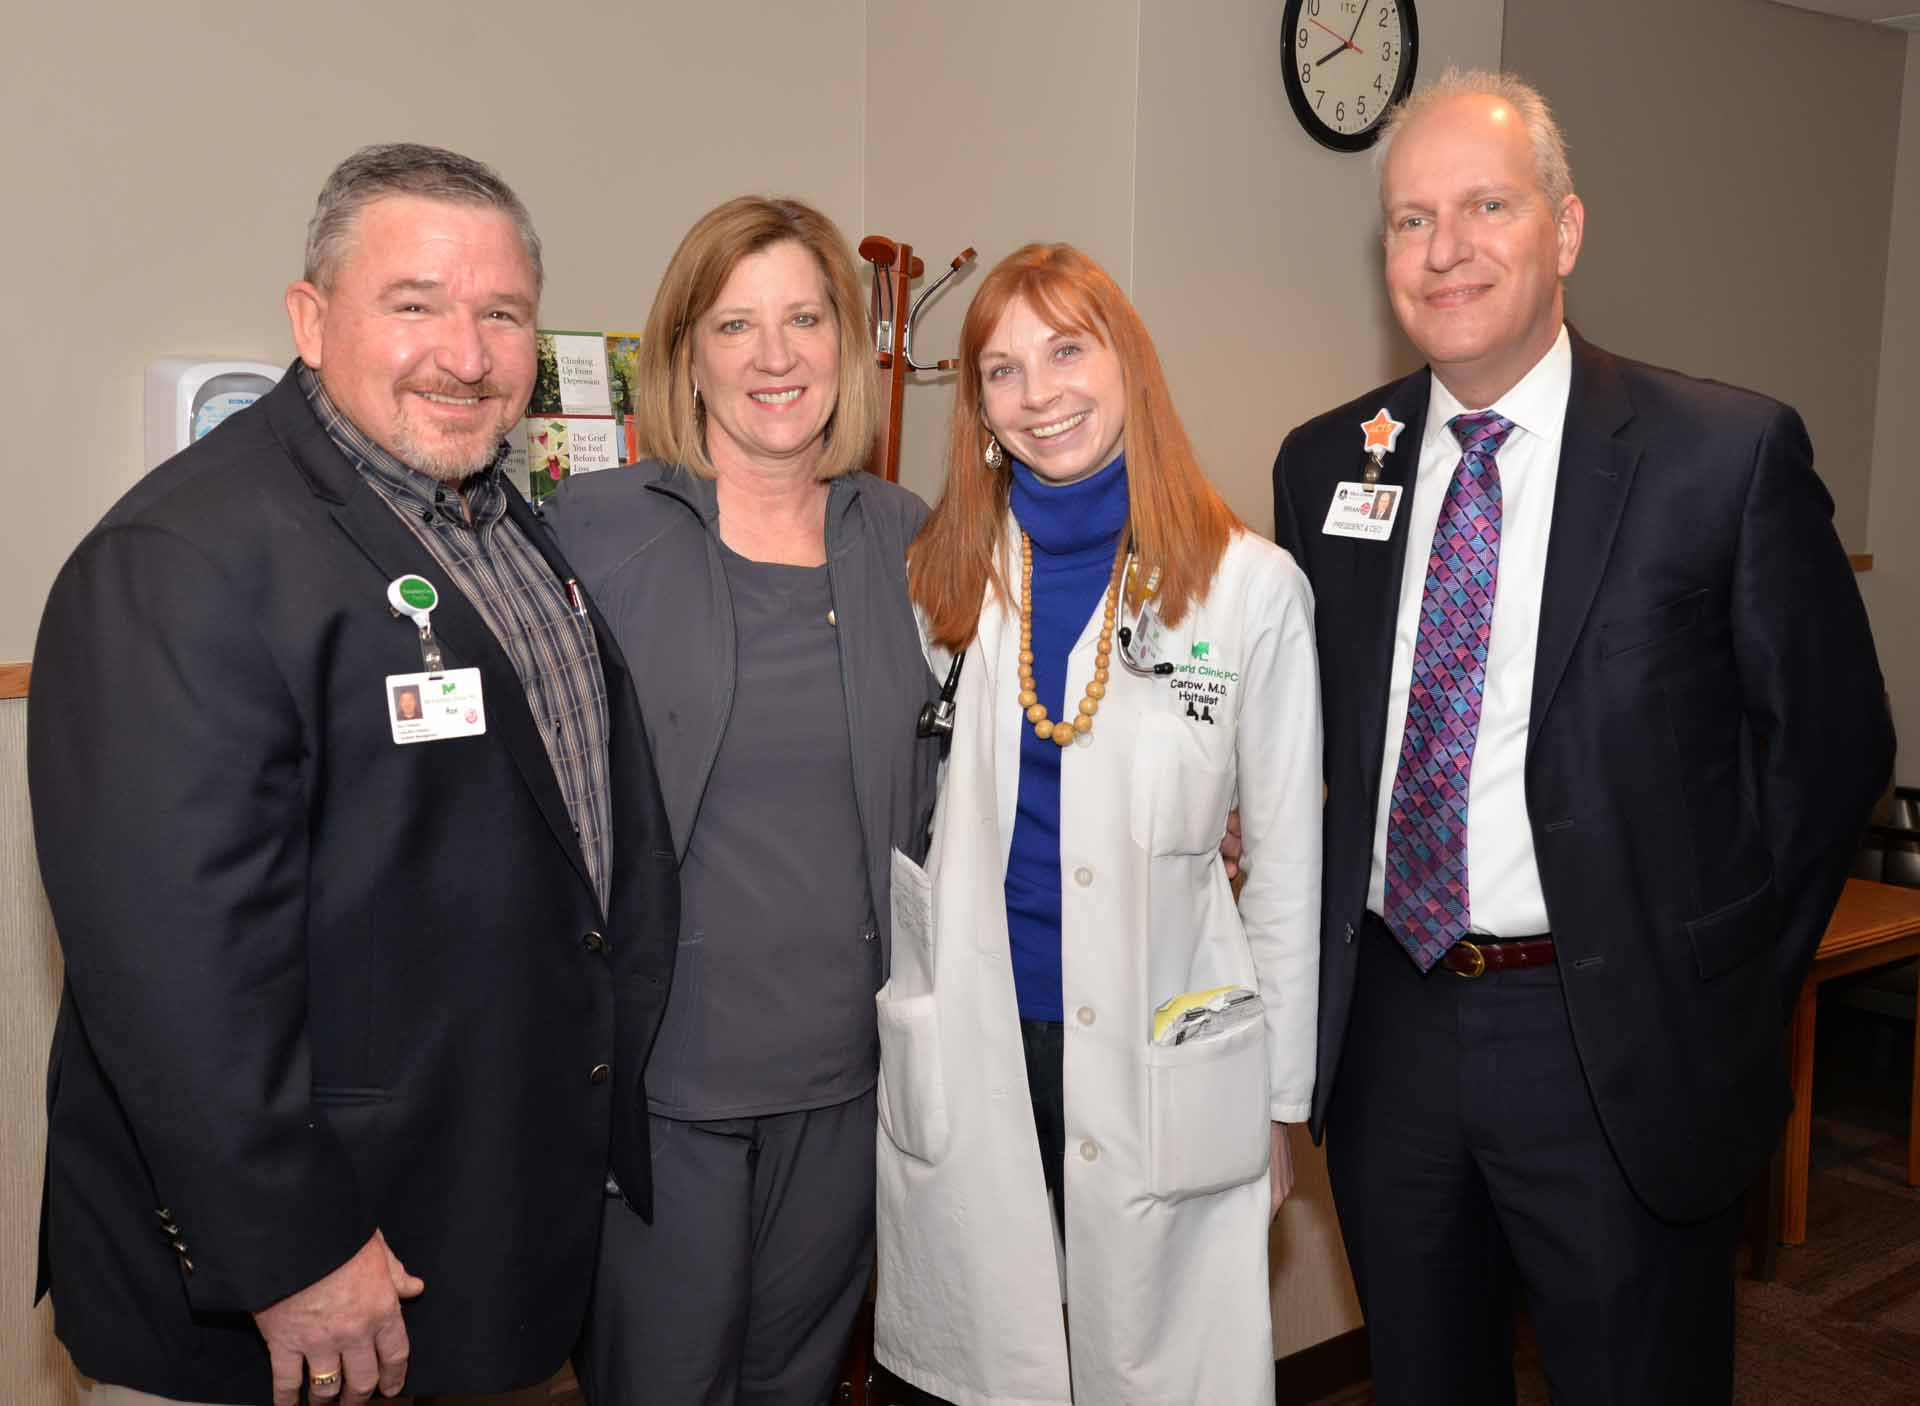 Dr. Cari Low Recognized for Extraordinary Care